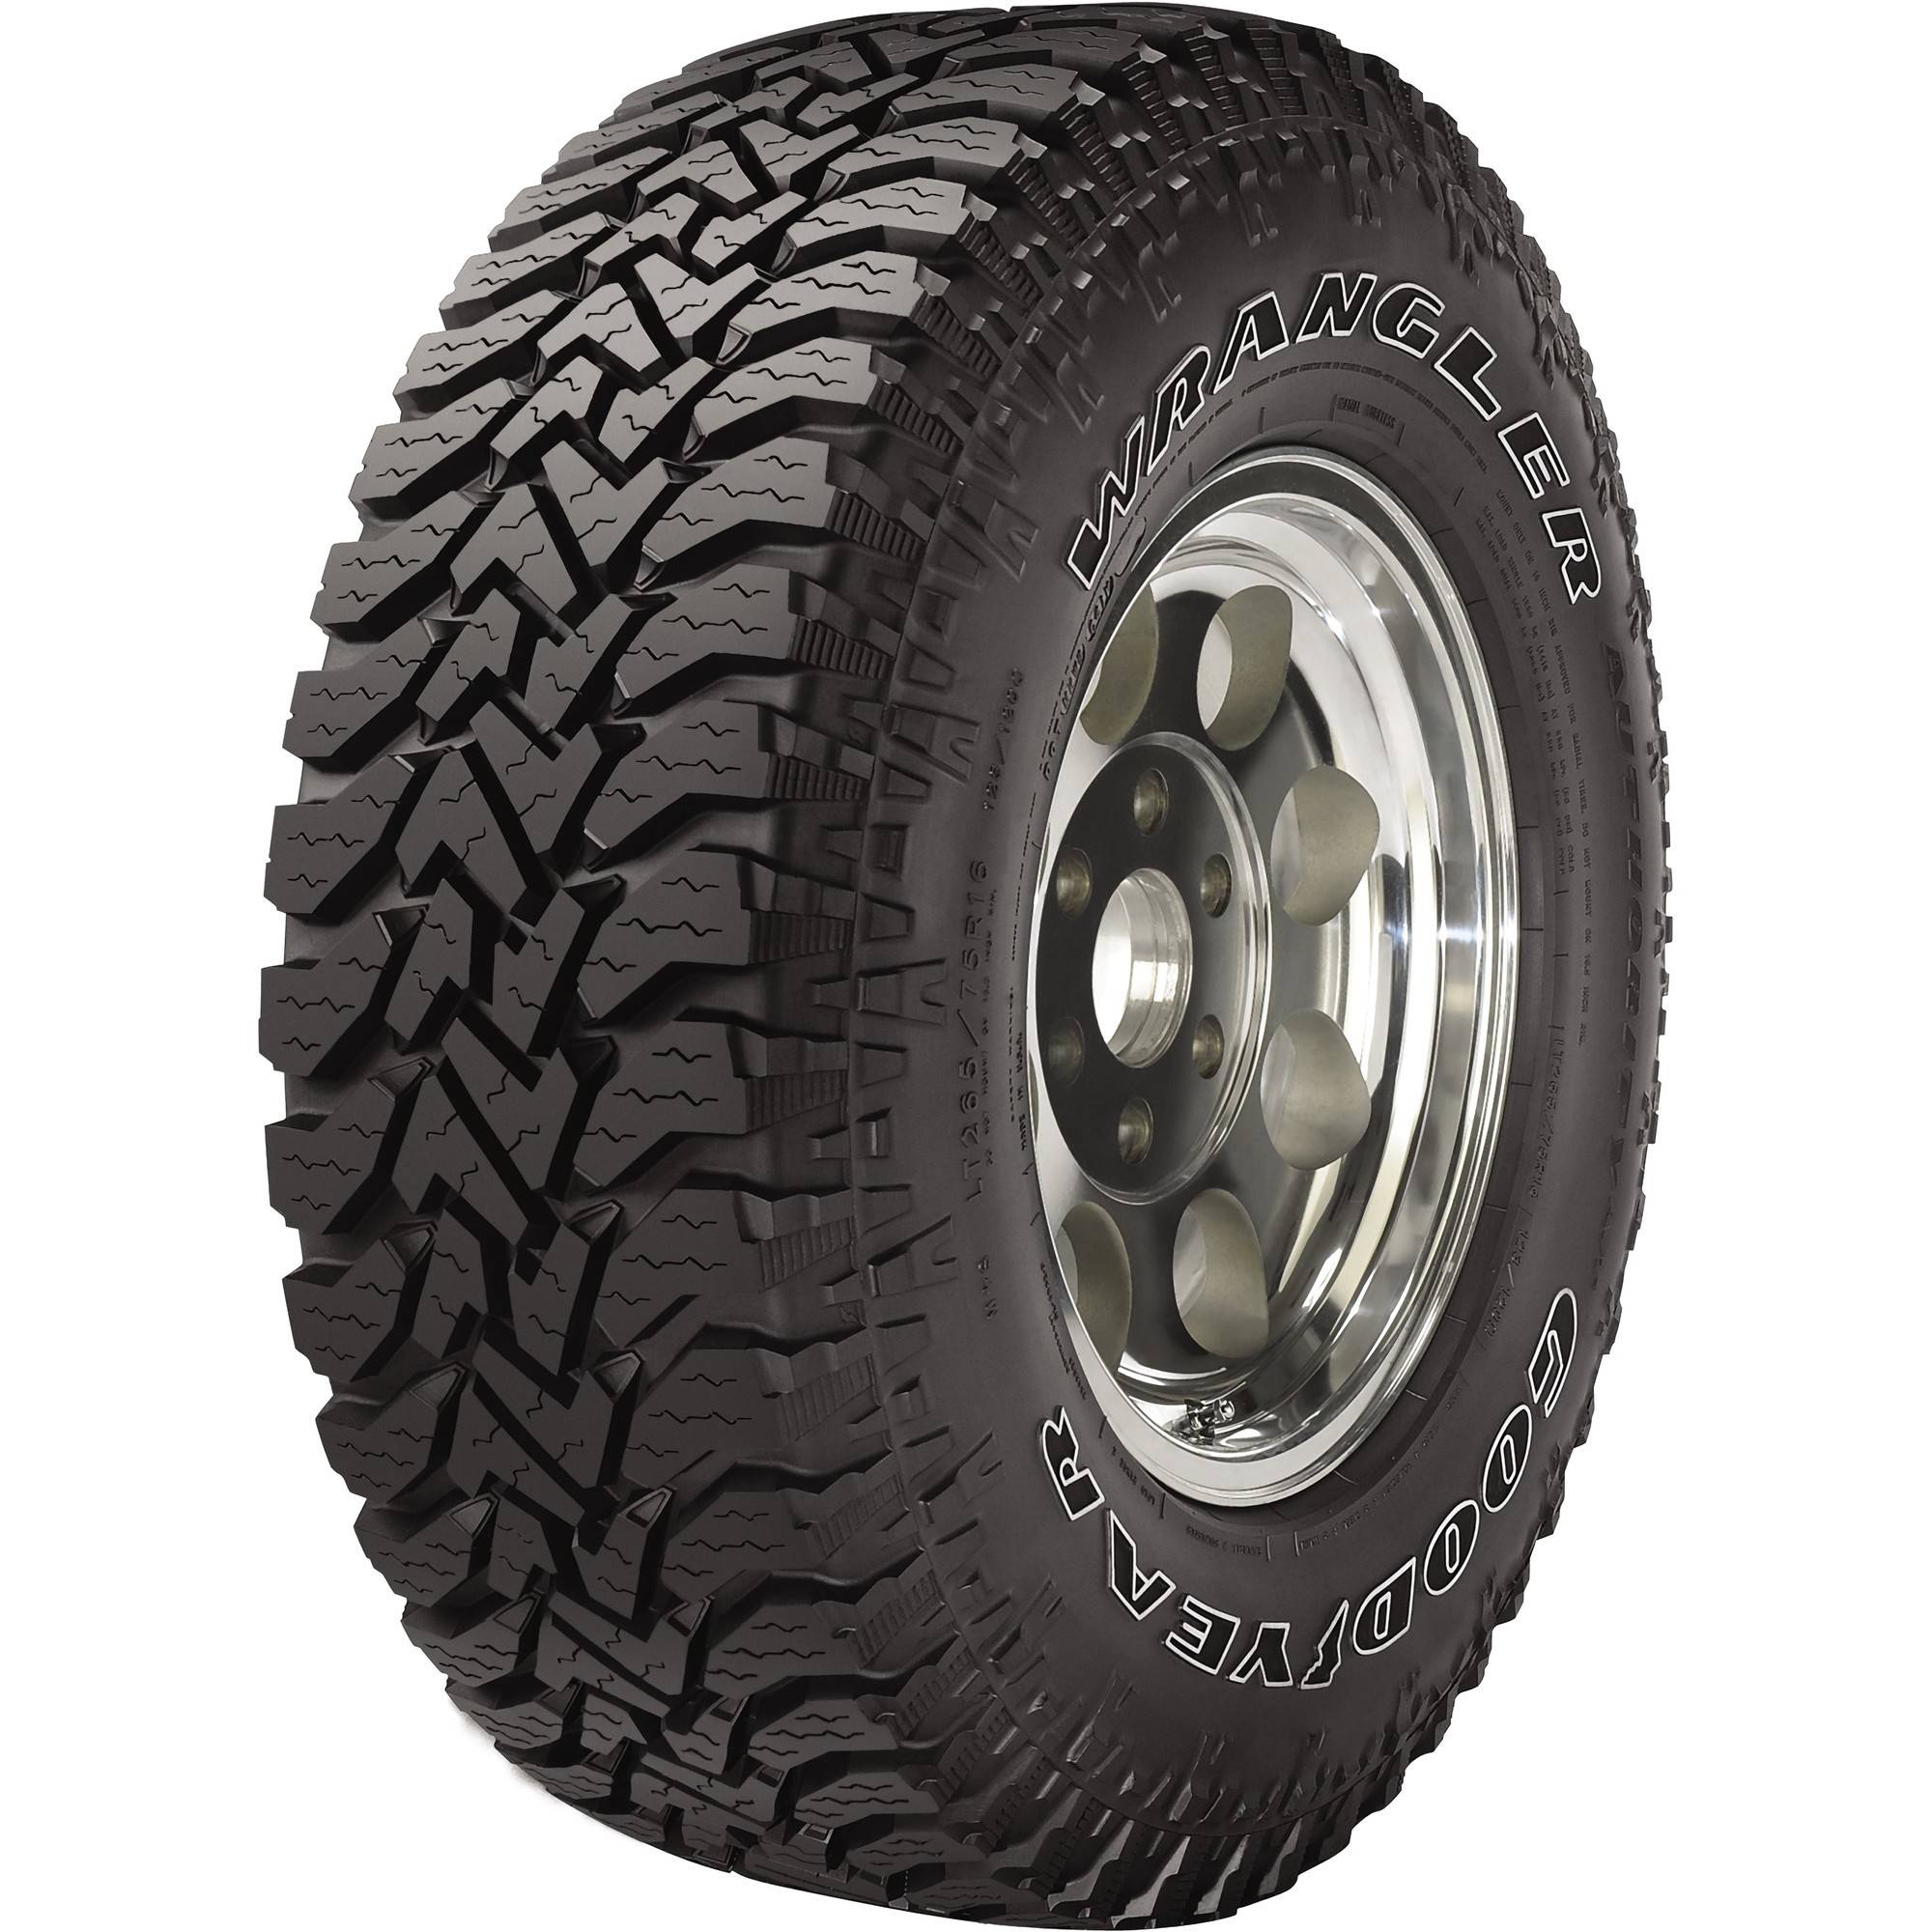 Goodyear Wrangler Authority Tire LT265/75R16C